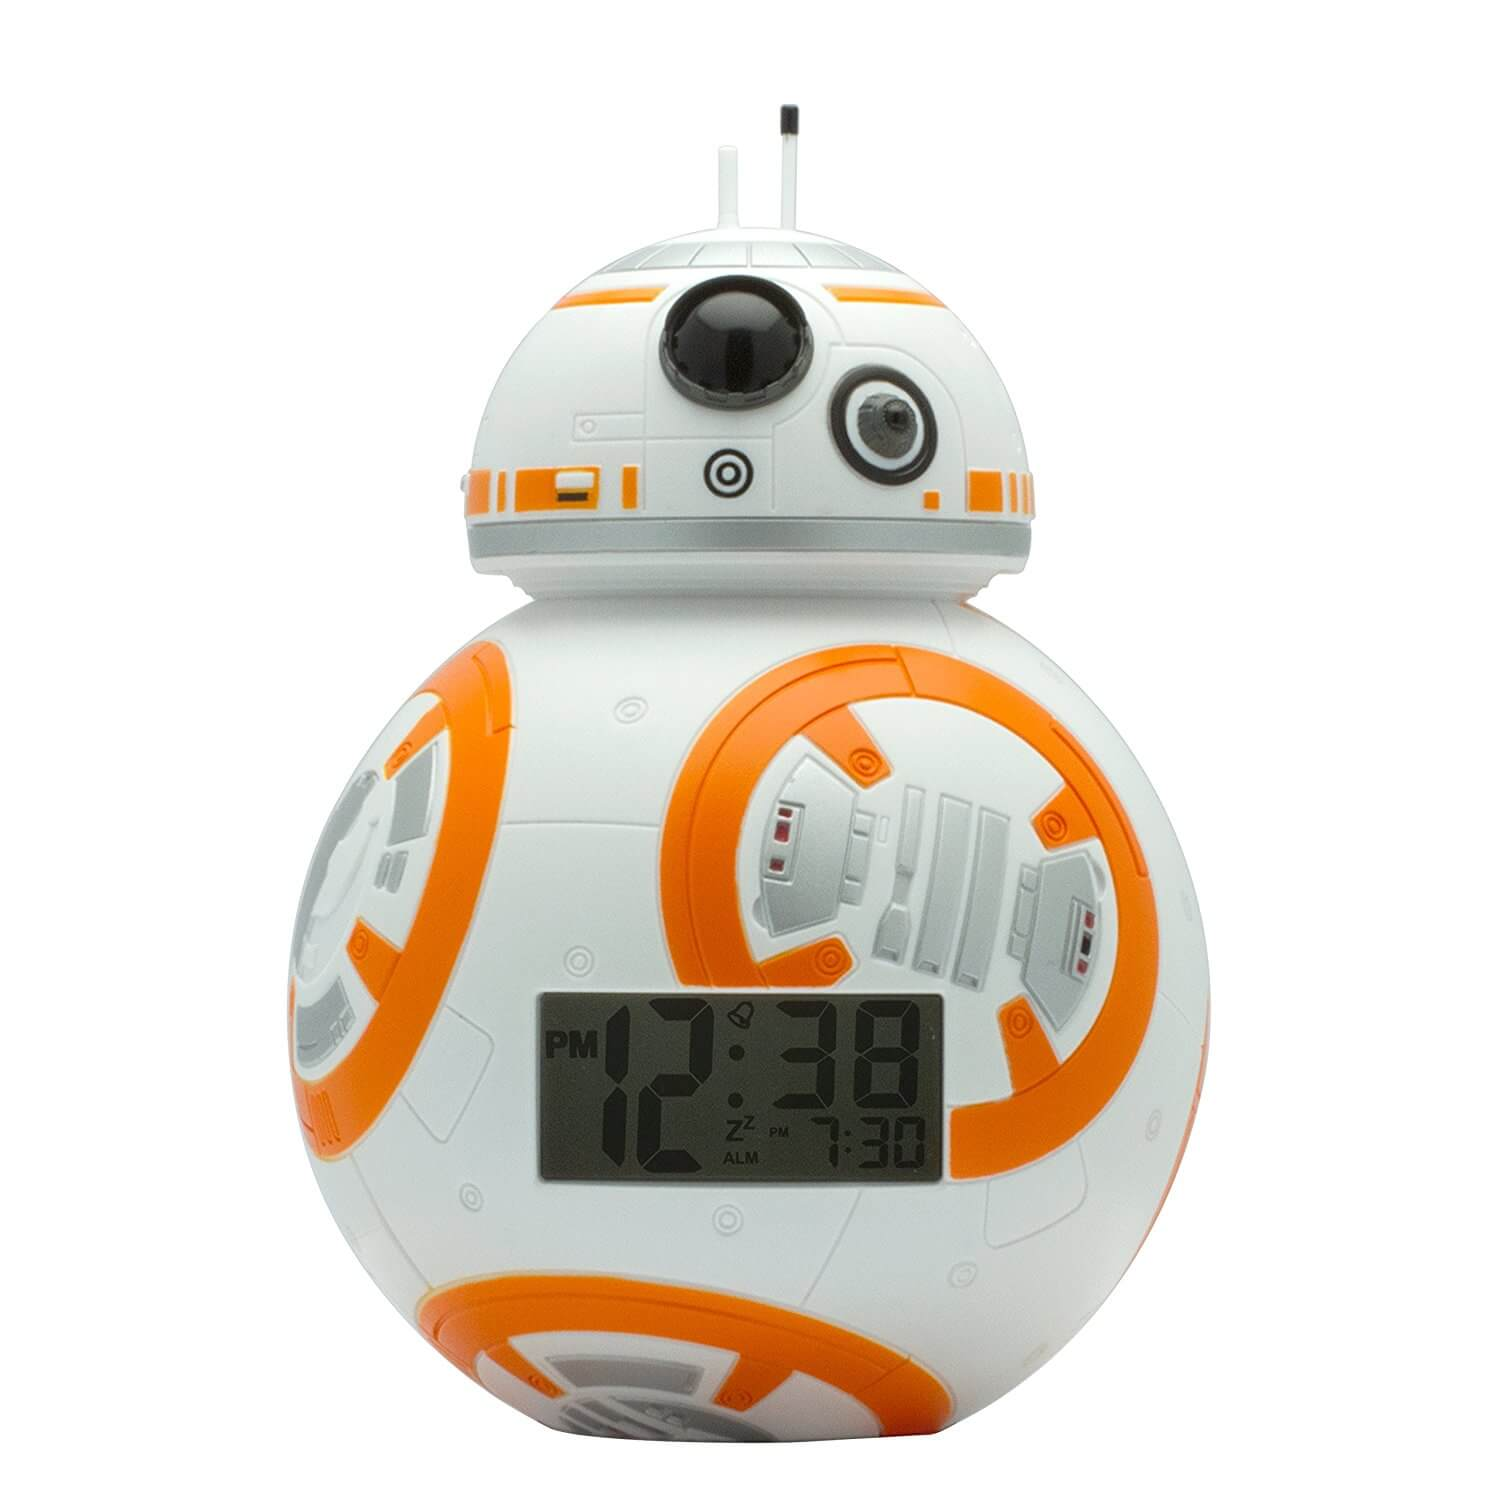 Interesting Bulbbotz Star Wars Kids Light Up Alarm Clock Bulbbotz Star Wars Kids Light Up Alarm Clock Kids Alarm Clock Cd Player Kids Alarm Clocks At Target baby Kids Alarm Clock